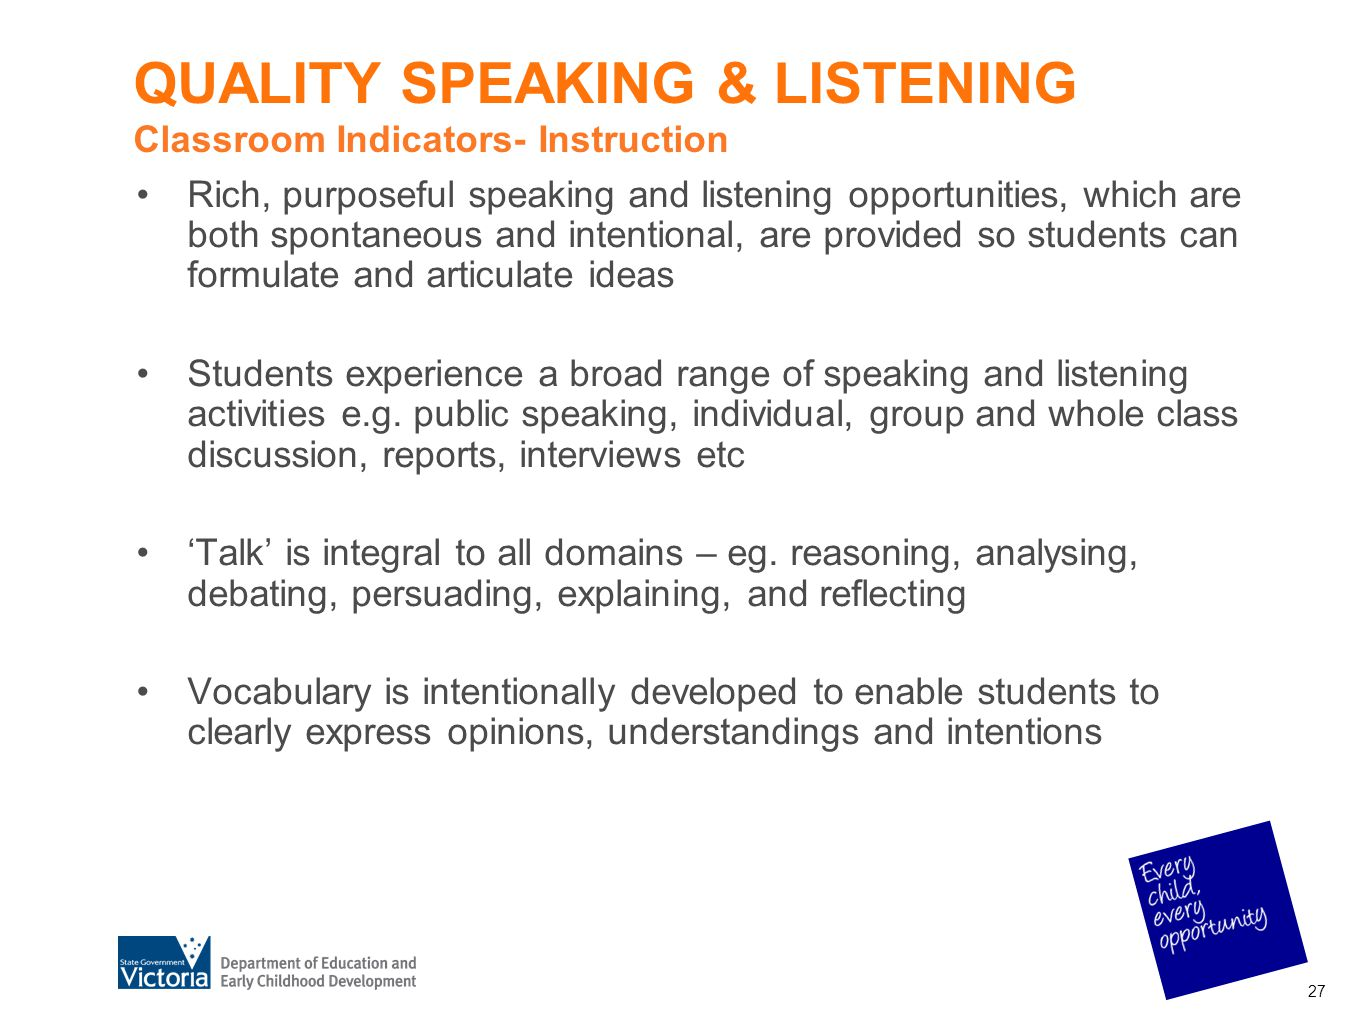 QUALITY SPEAKING & LISTENING Classroom Indicators- Instruction